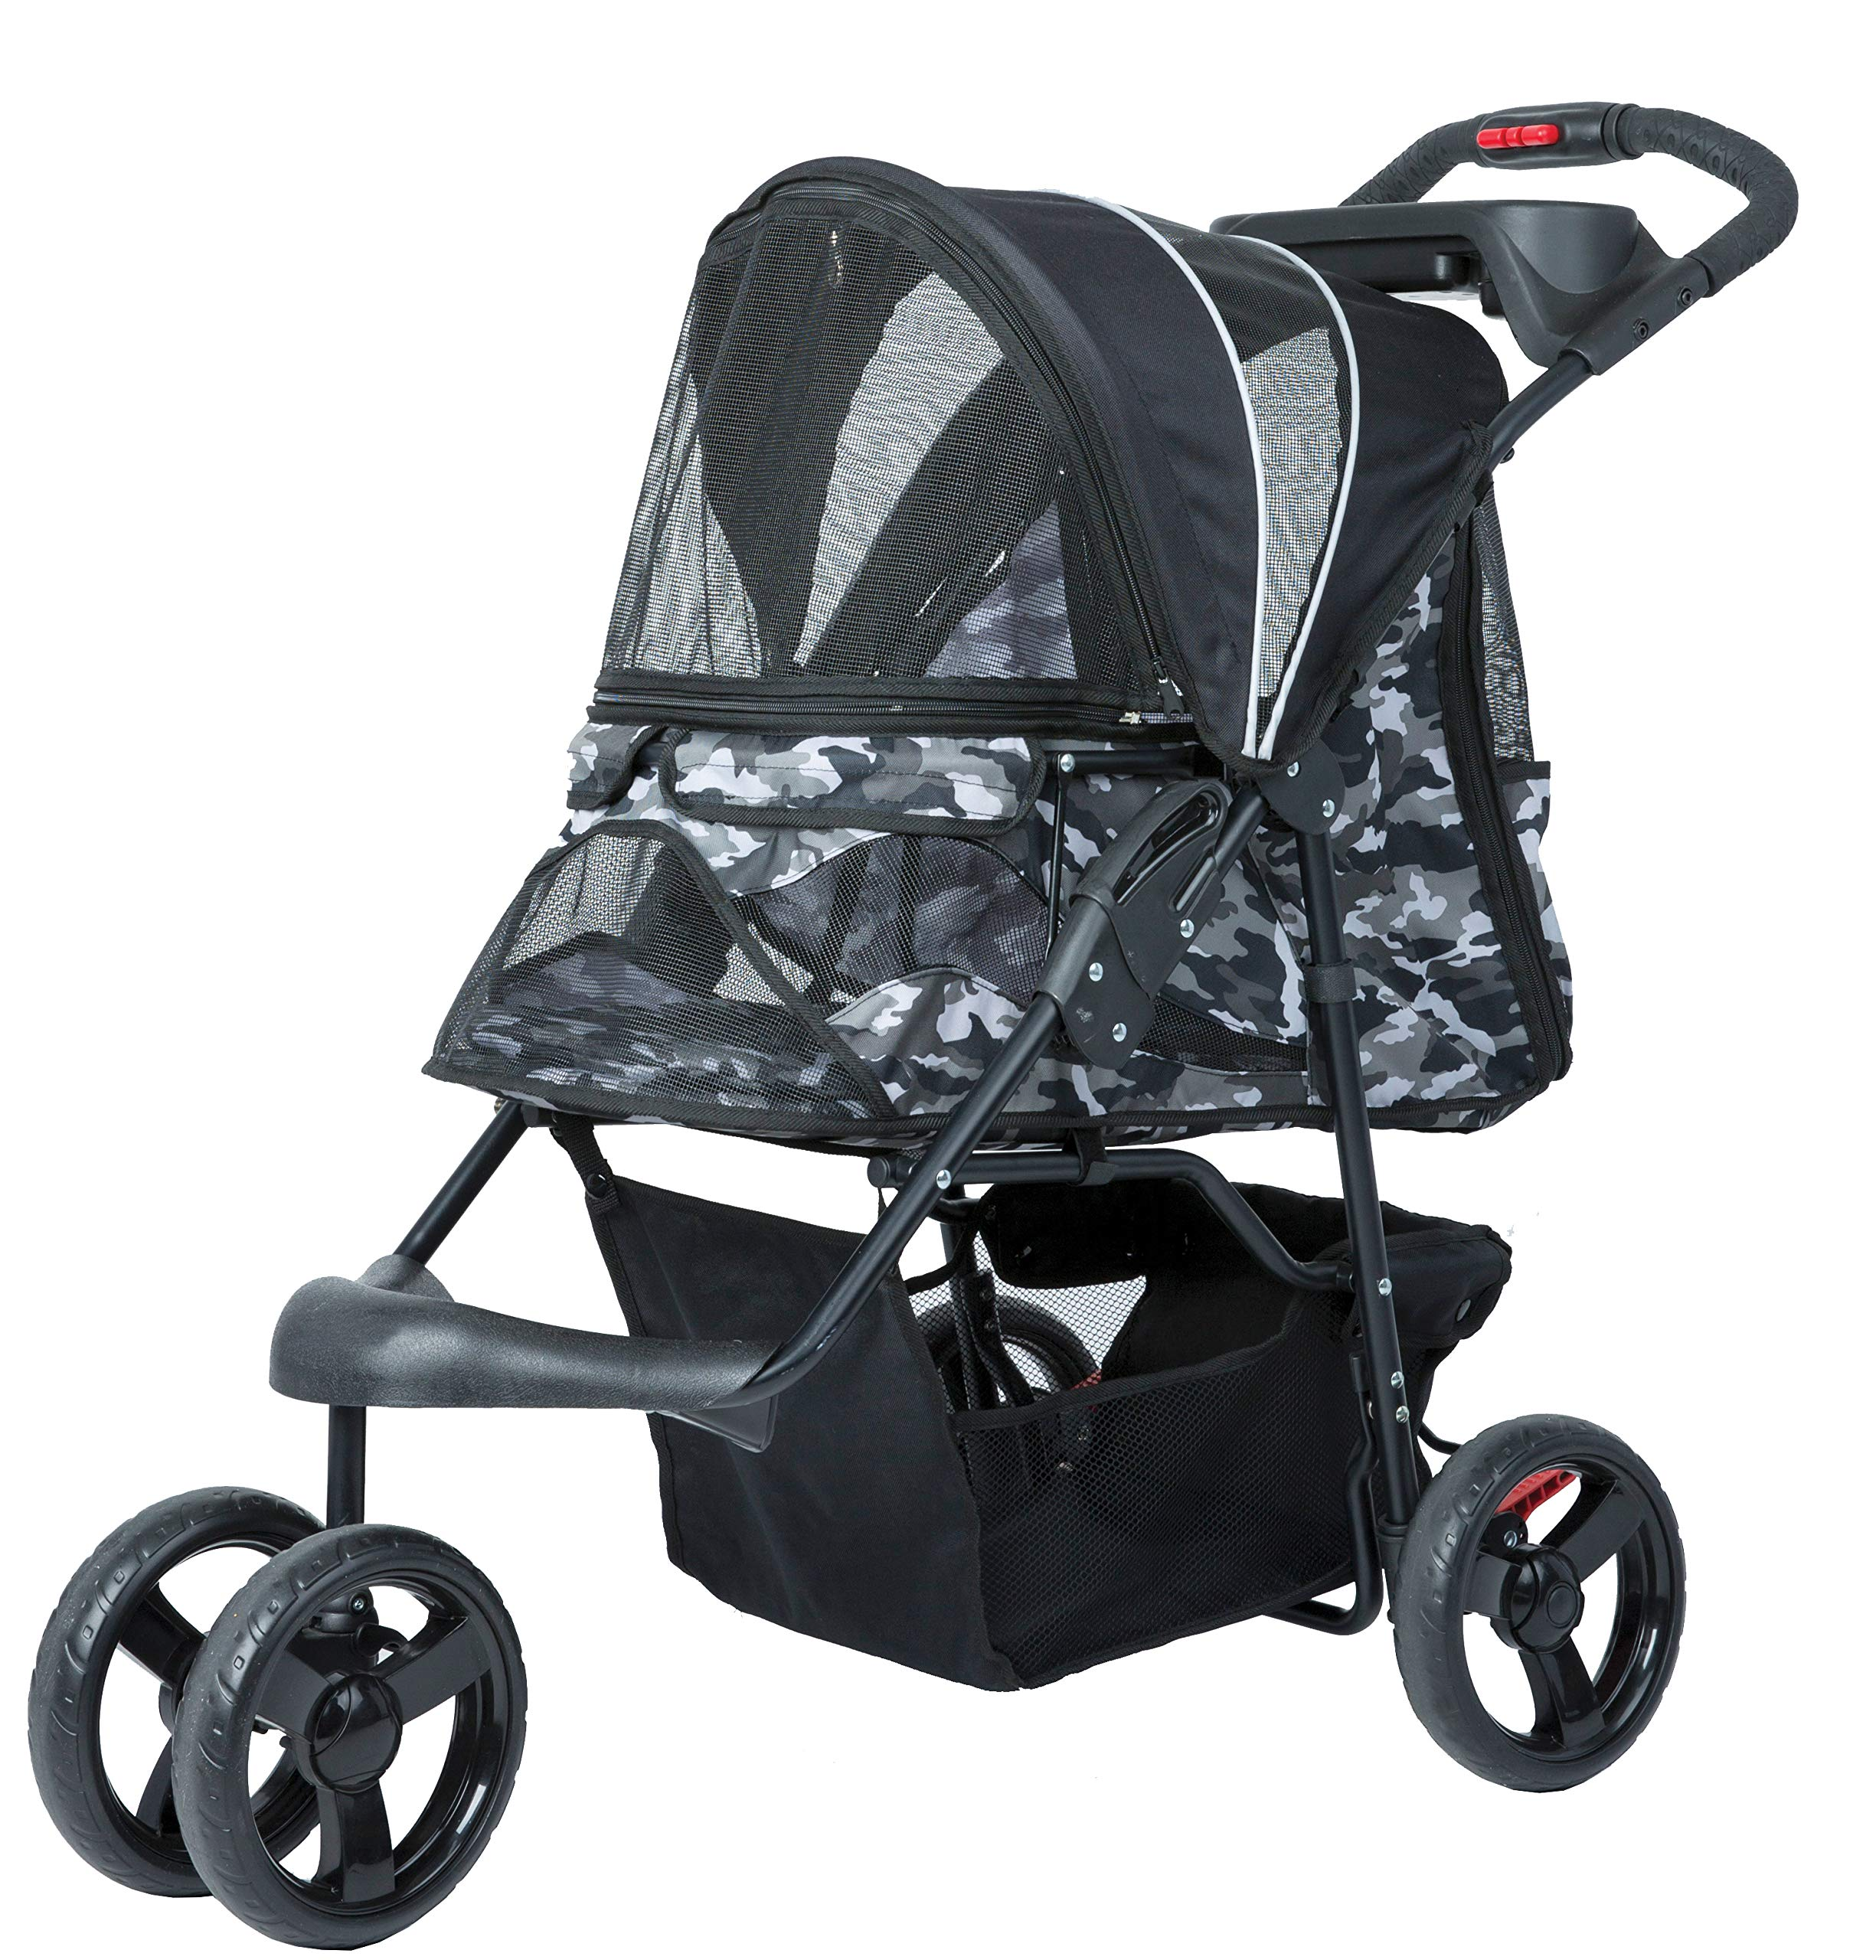 Petique Pet Stroller, Black Camo, One Size by Petique